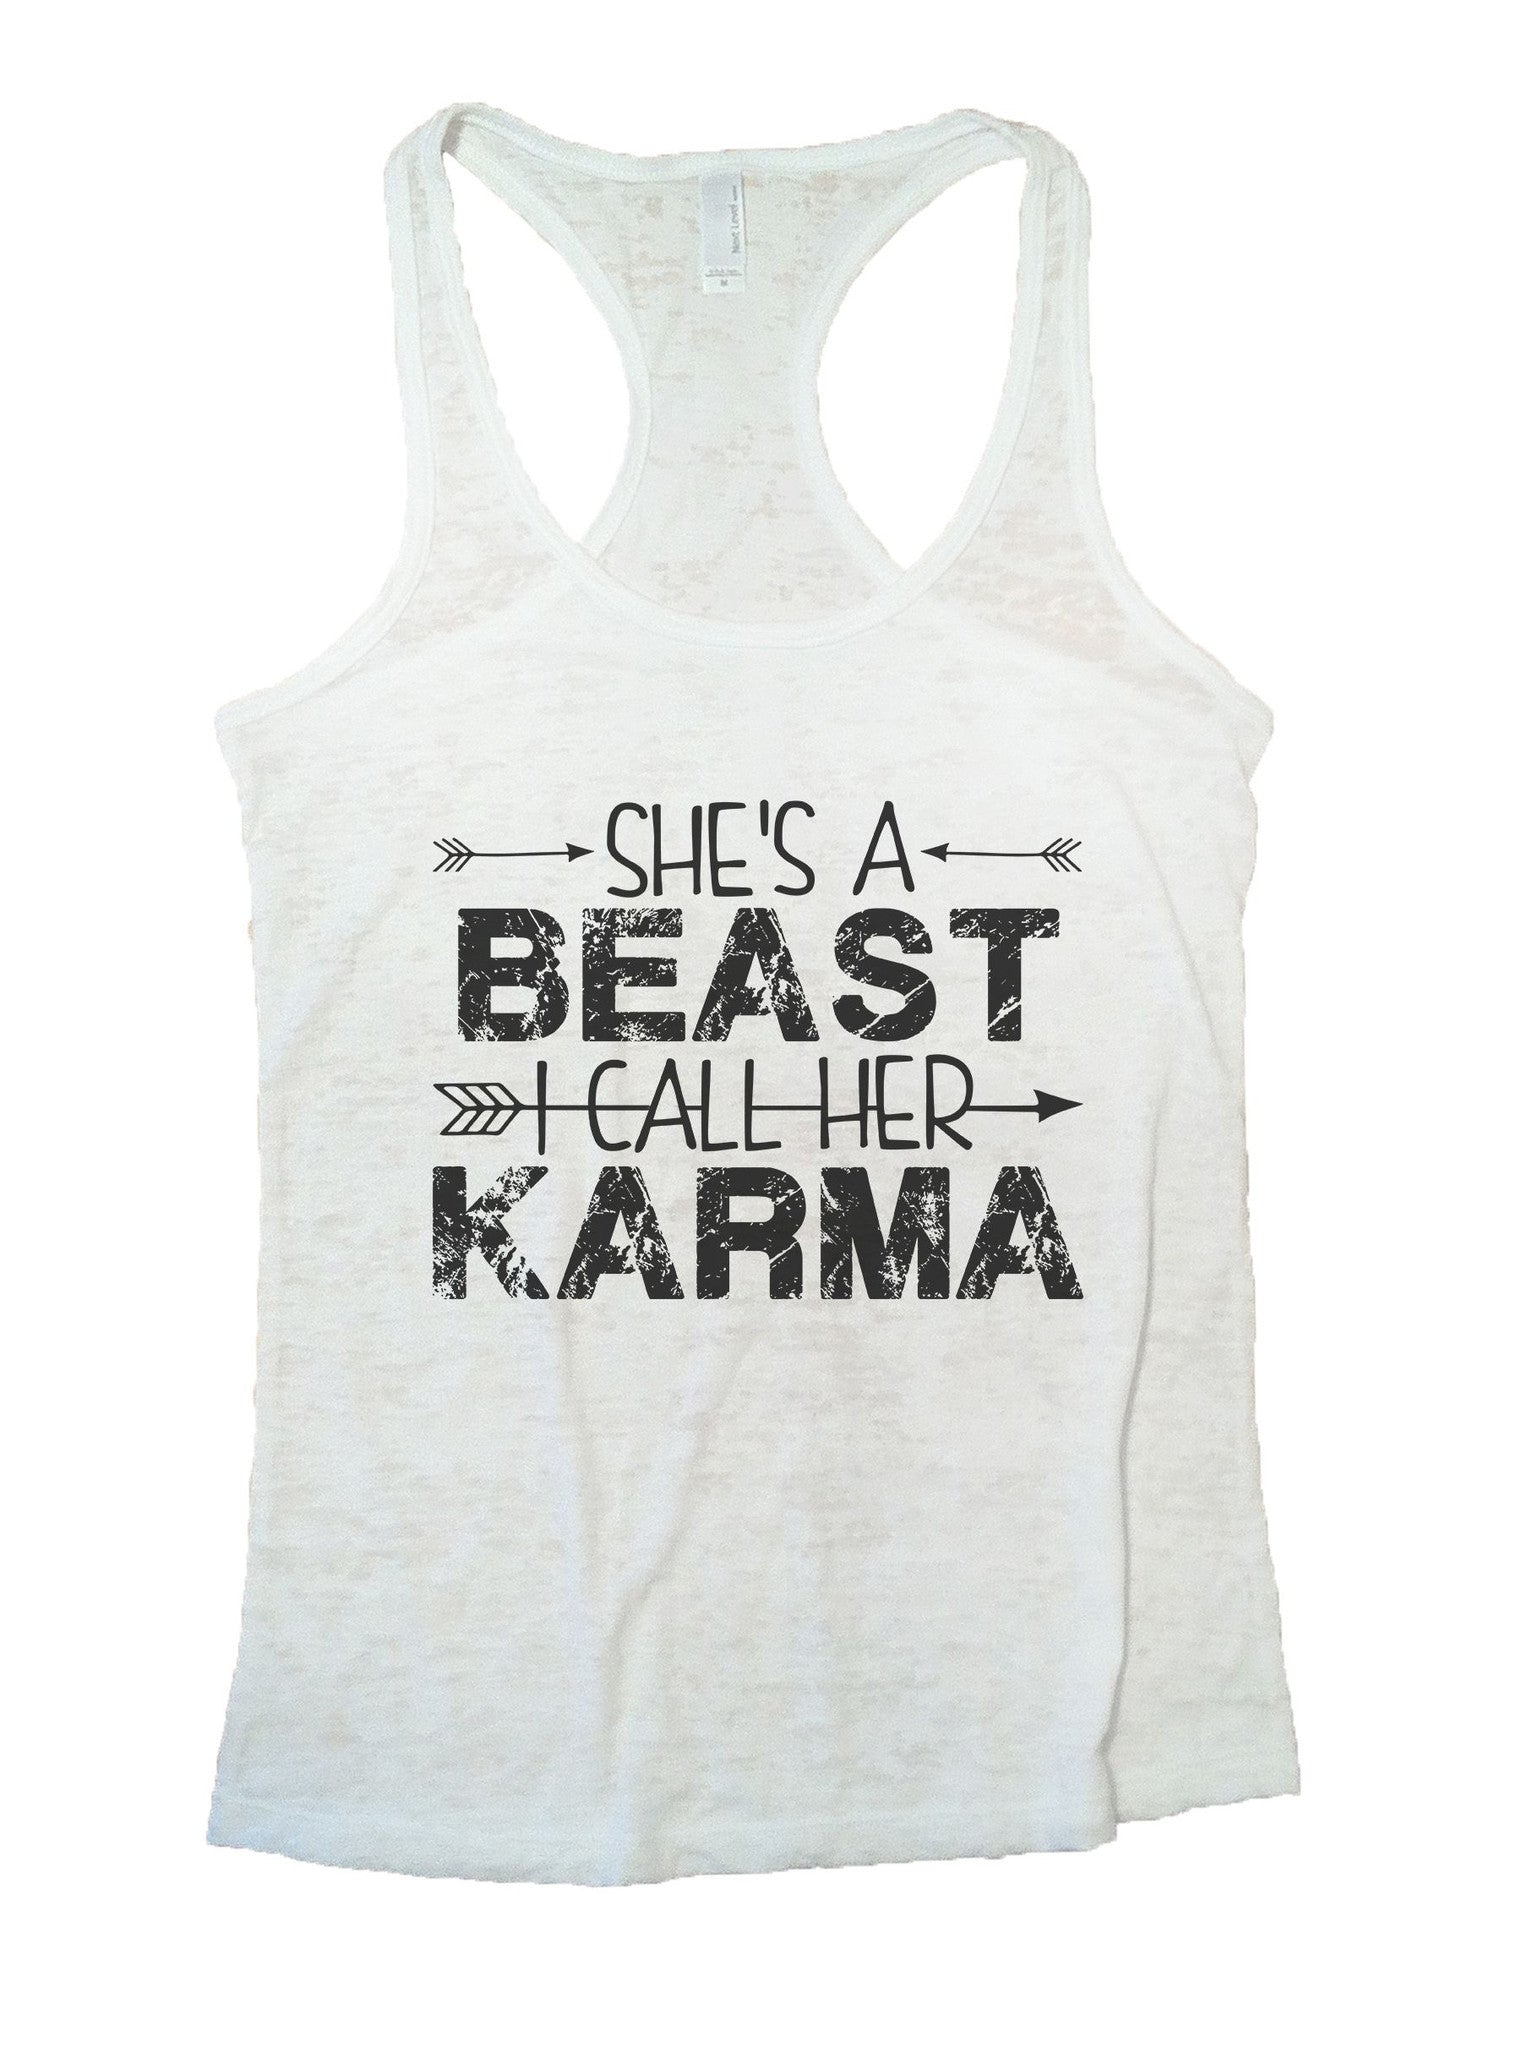 She's A Beast I Call Her Karma Burnout Tank Top By BurnoutTankTops.com - 1125 - Funny Shirts Tank Tops Burnouts and Triblends  - 7